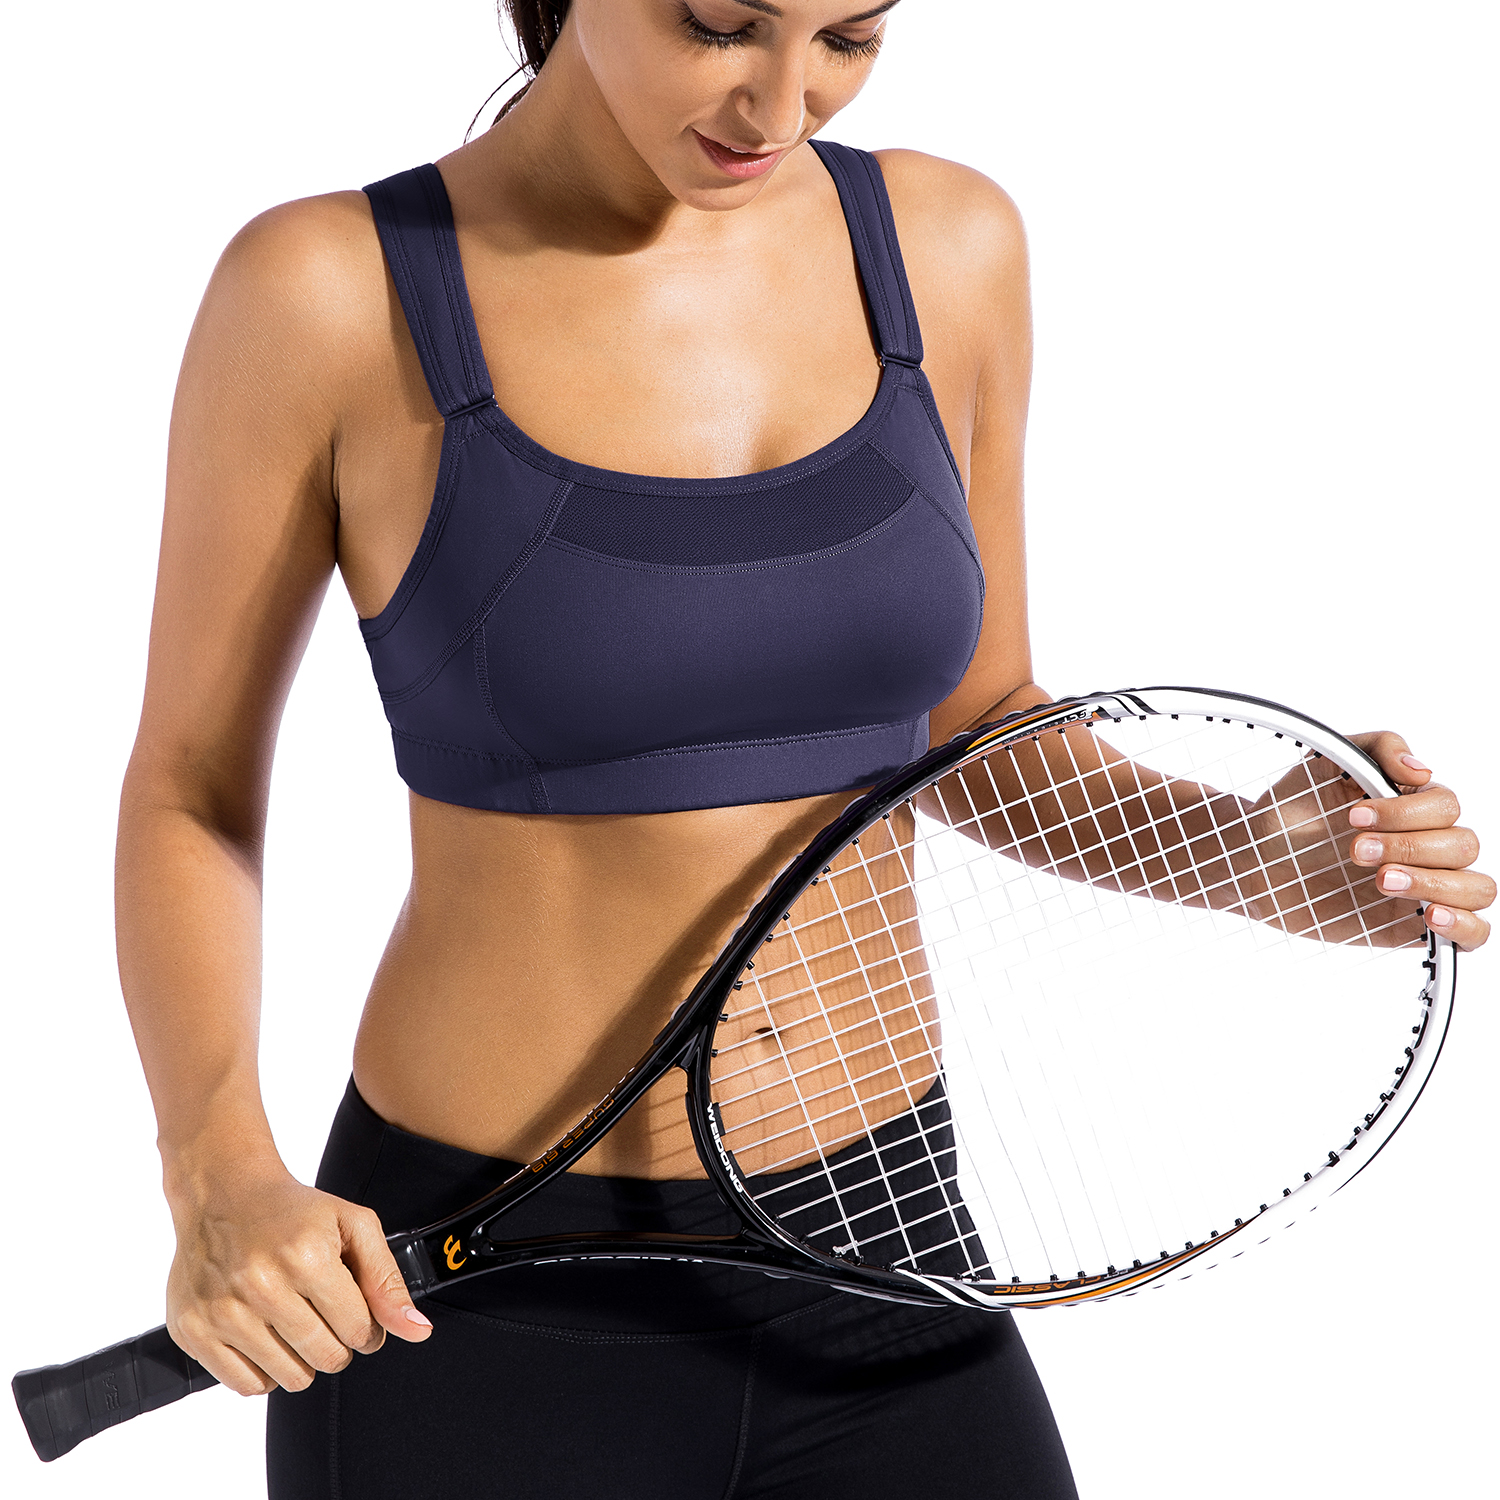 Women-039-s-Bounce-Control-Wire-Free-High-Impact-Max-Support-Sports-Bra thumbnail 23